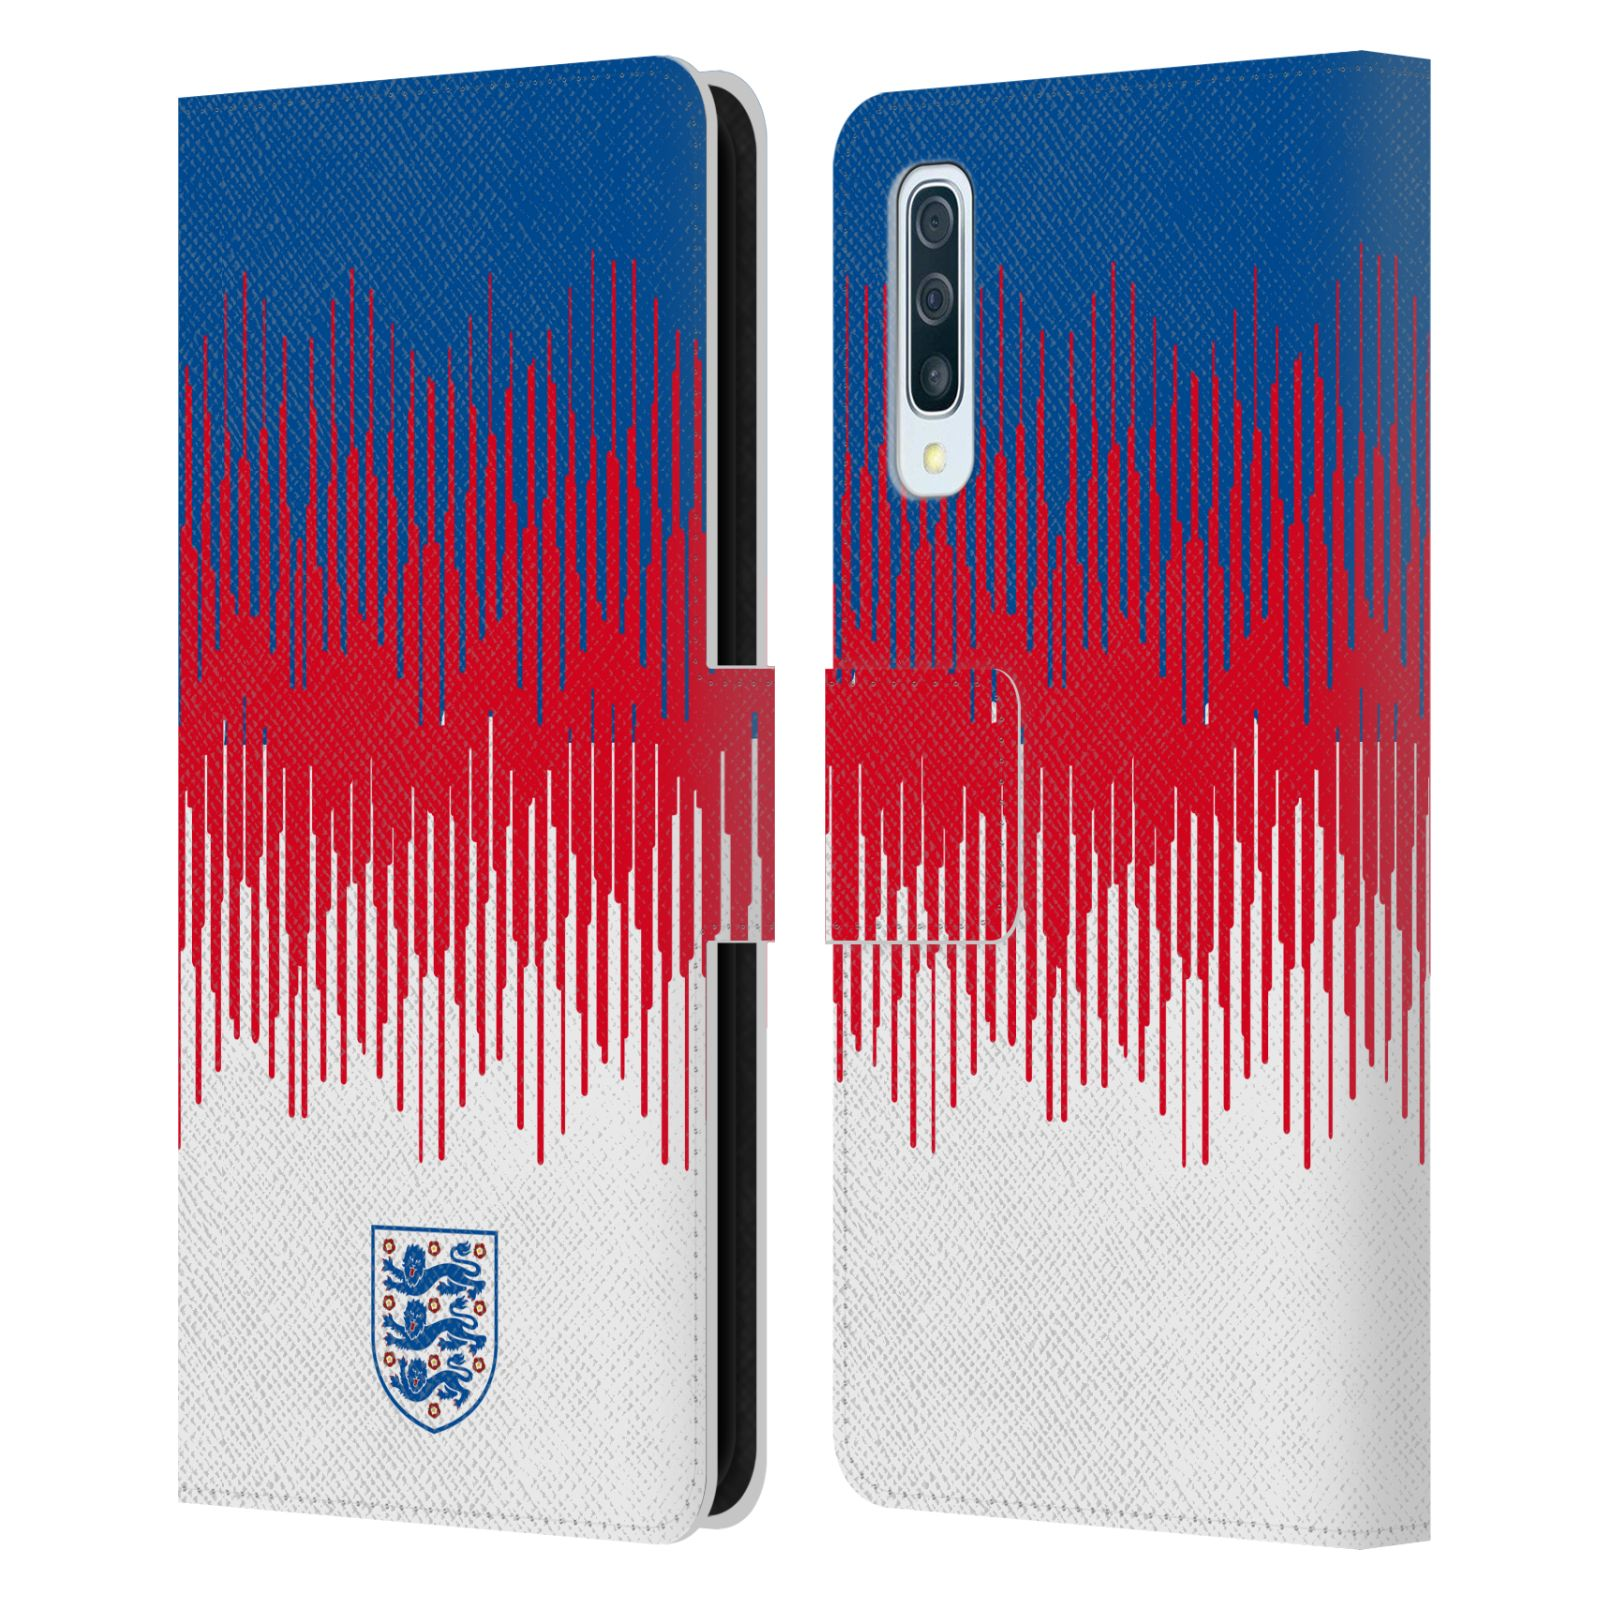 Official England National Football Team 2018/19 Crest Pattern Leather Book Wallet Case For Samsung Galaxy A50/A30s (2019)